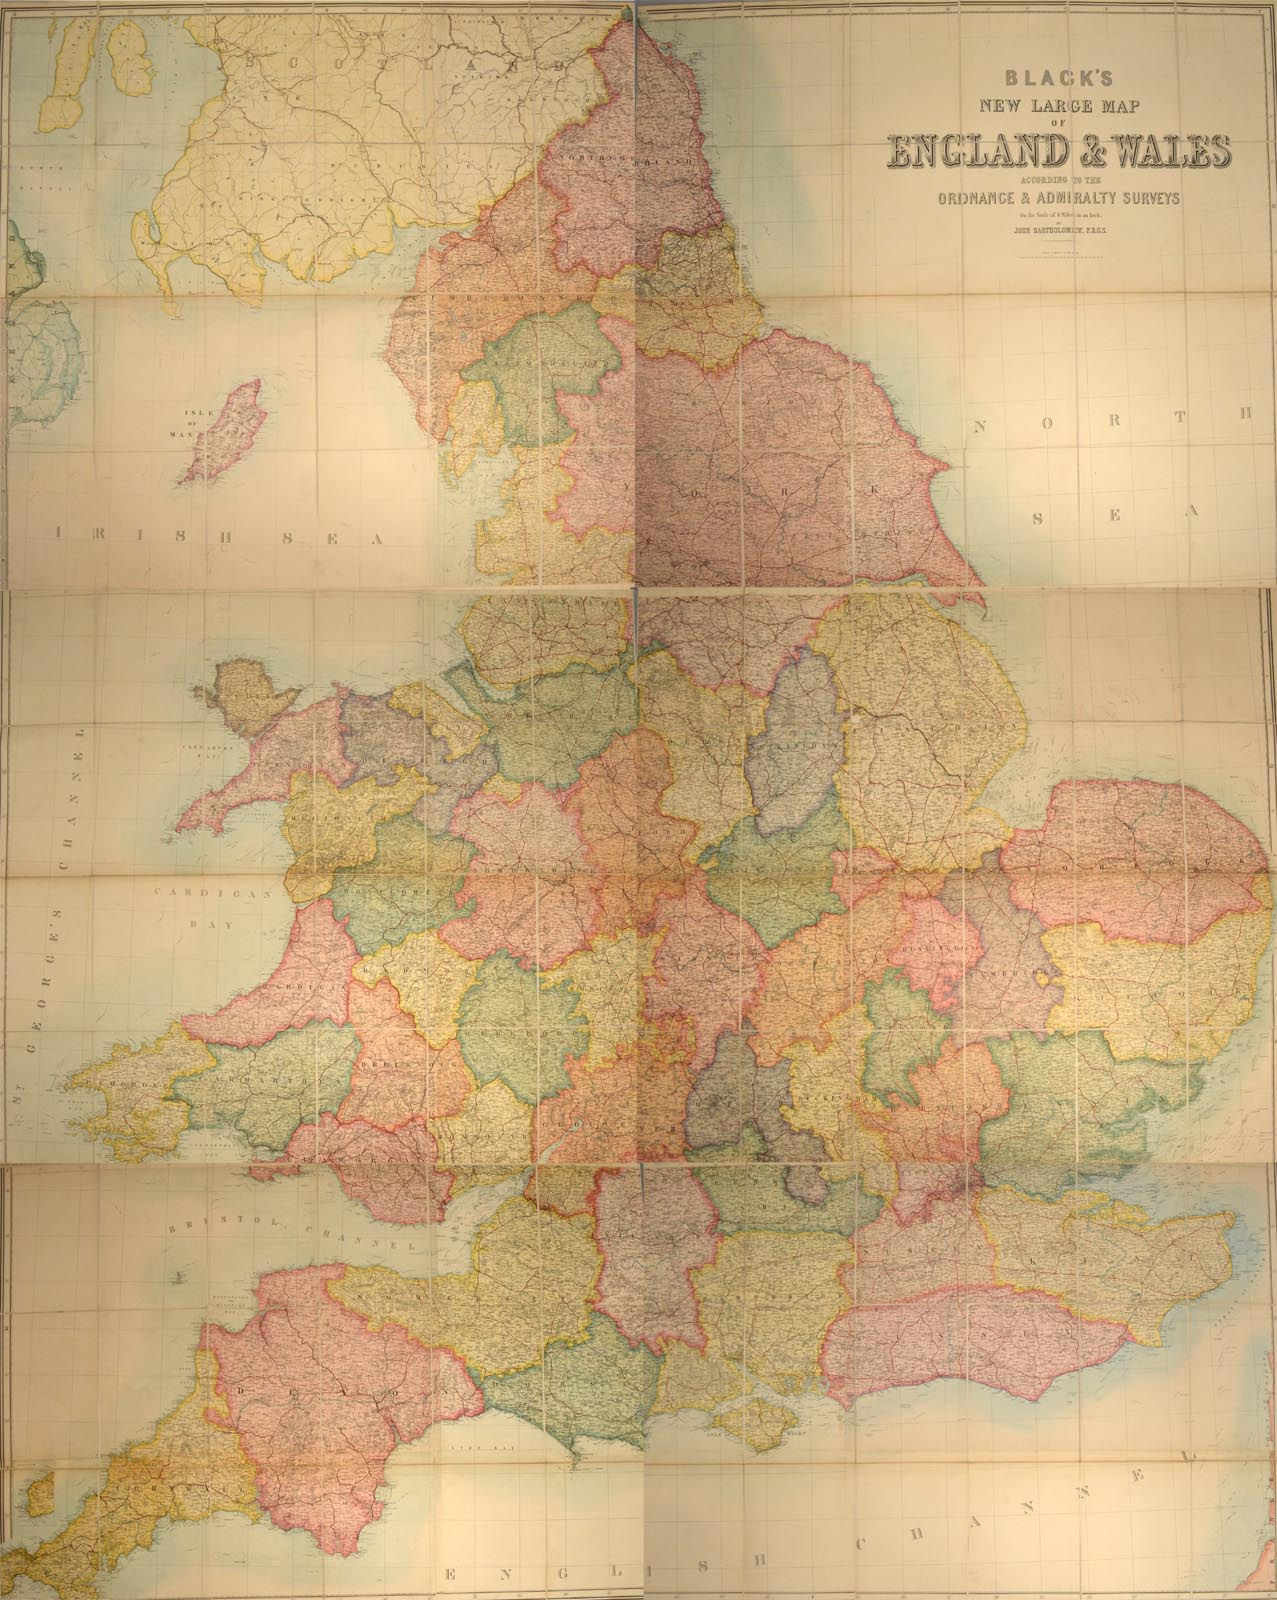 BLACK, ADAM AND CHARLES, PUBLISHERS - Black's New Large Map of England and Wales